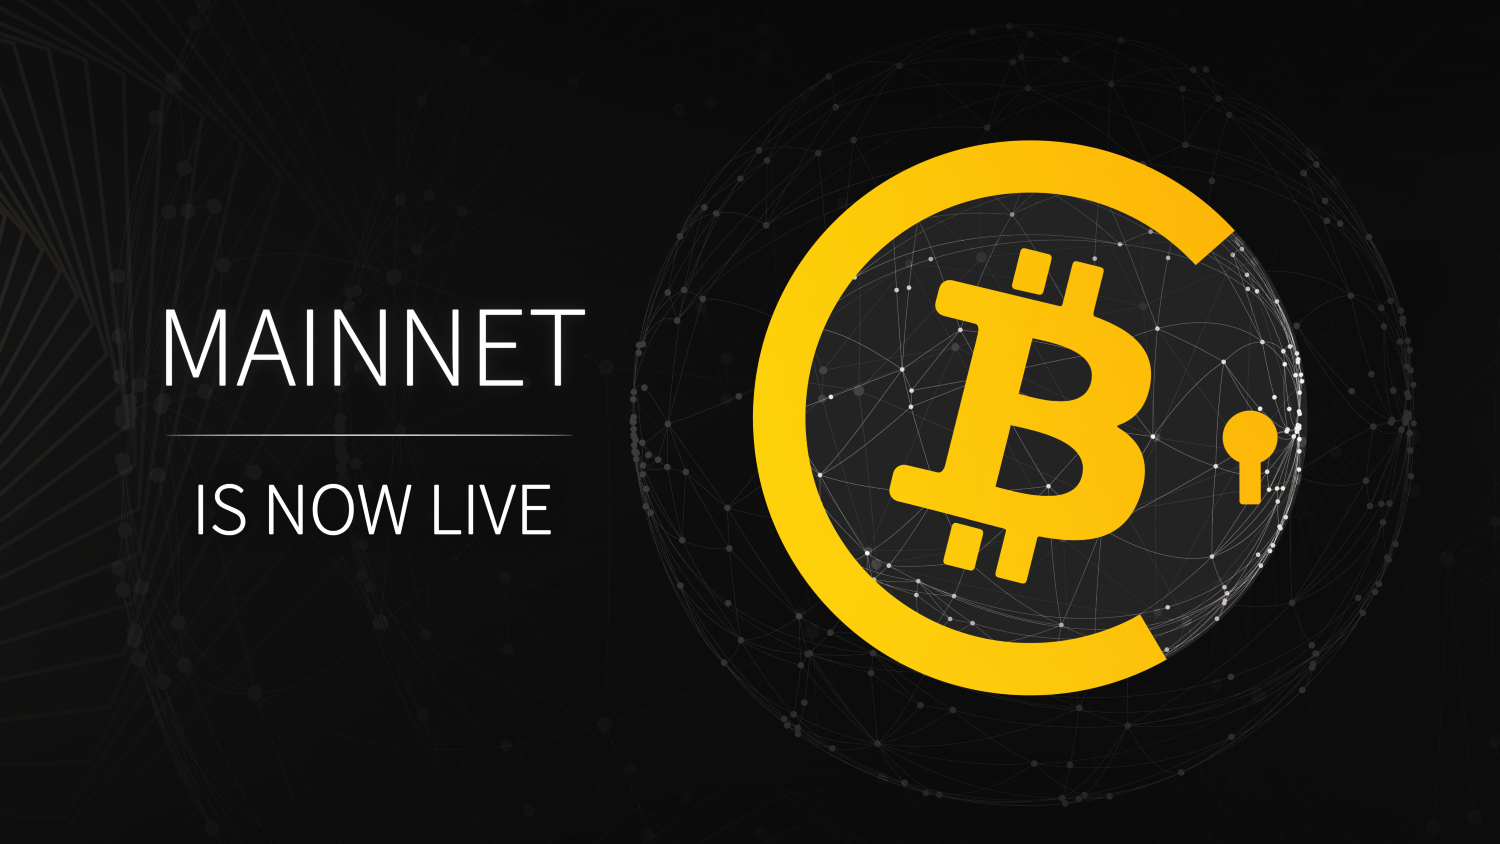 The Bitcoin Confidential Mainnet Is Now Live - Coinlance